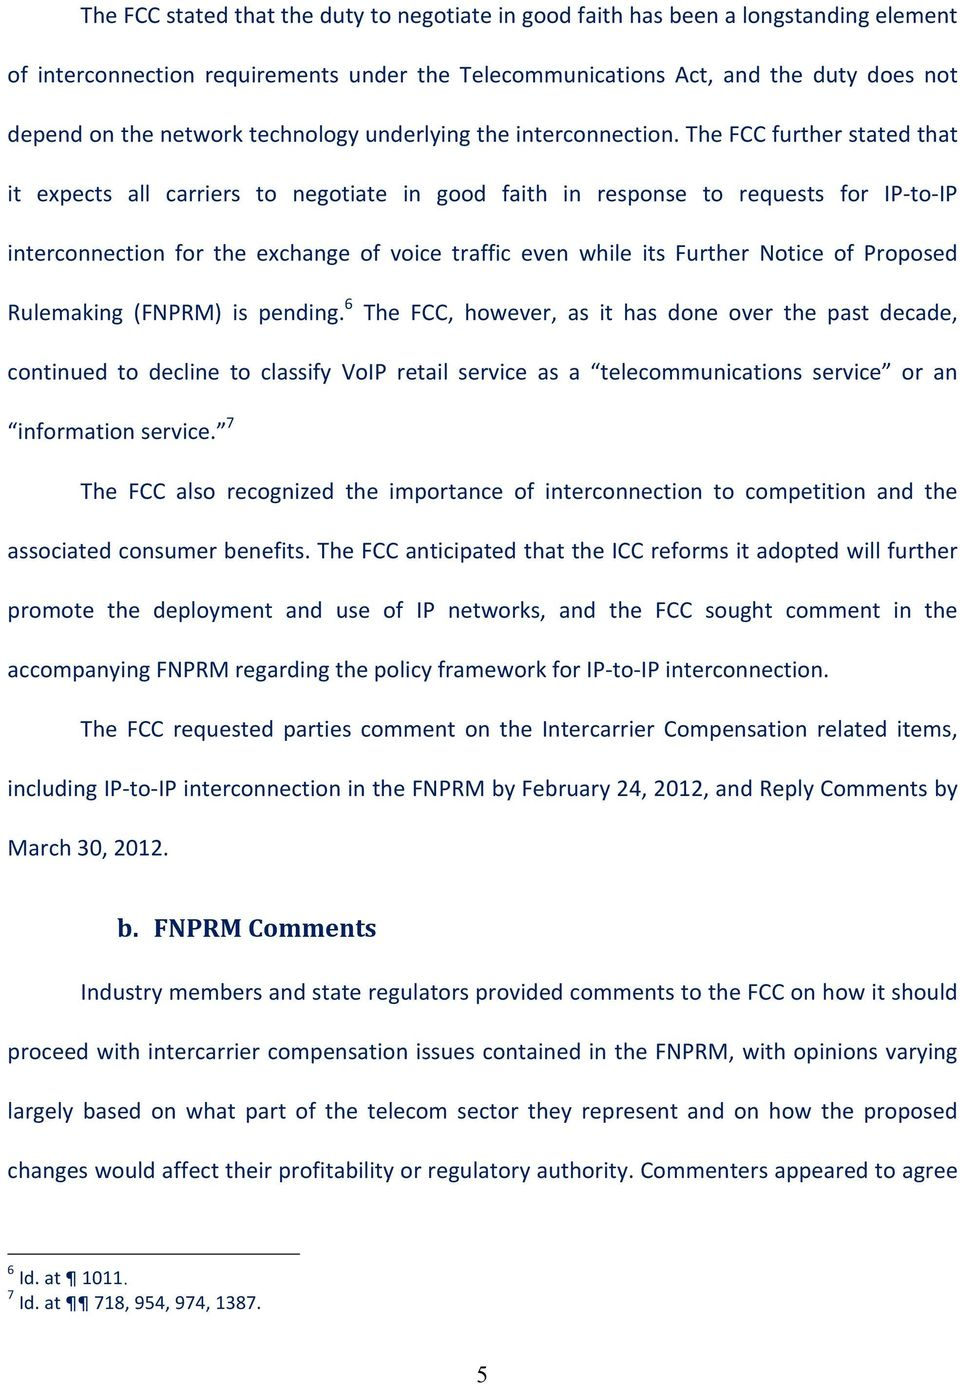 The FCC further stated that it expects all carriers to negotiate in good faith in response to requests for IP- to- IP interconnection for the exchange of voice traffic even while its Further Notice